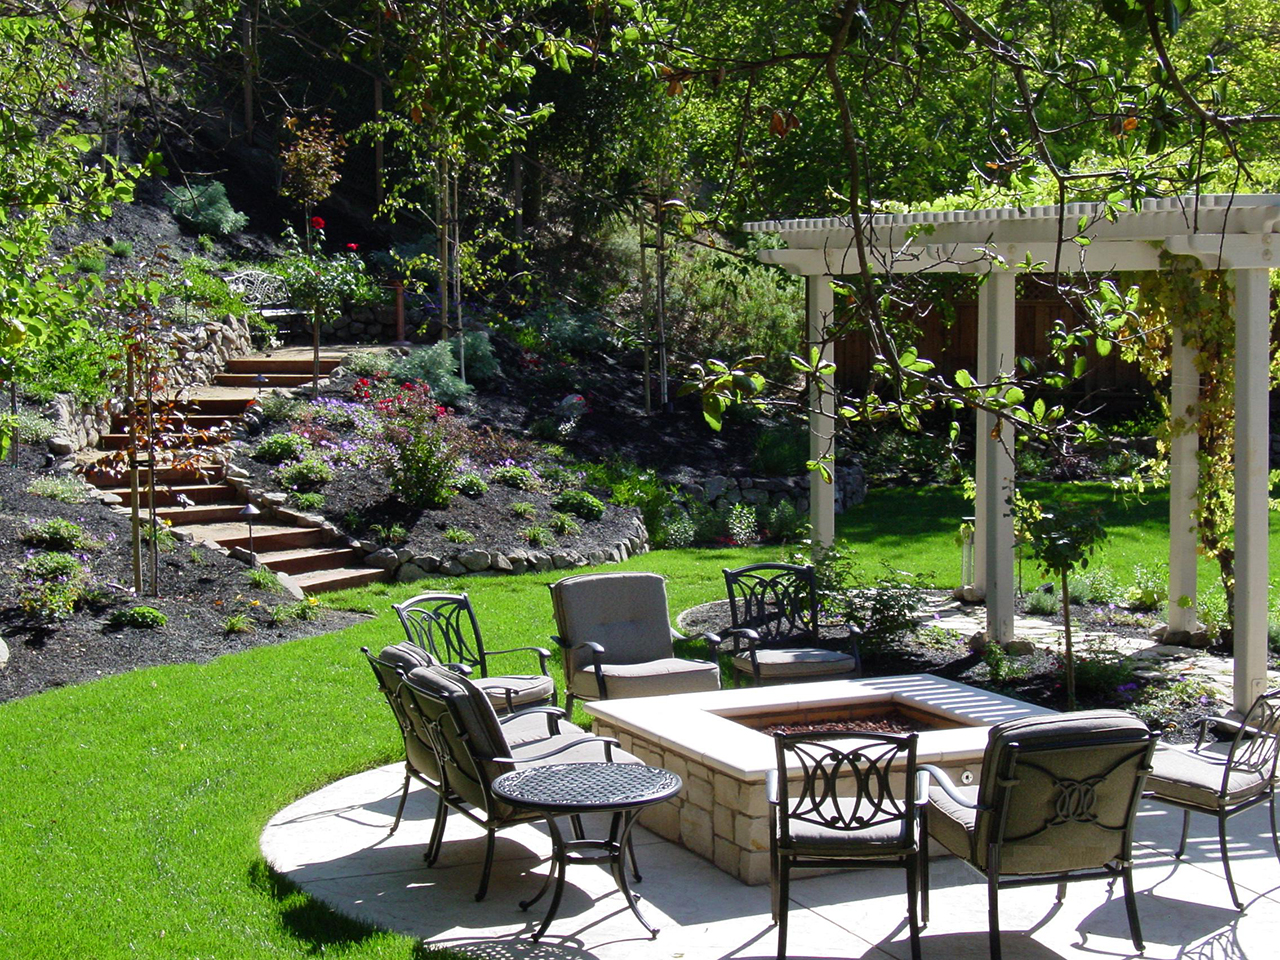 backyard garden ideas 50 best backyard landscaping ideas and designs in 2019 29238